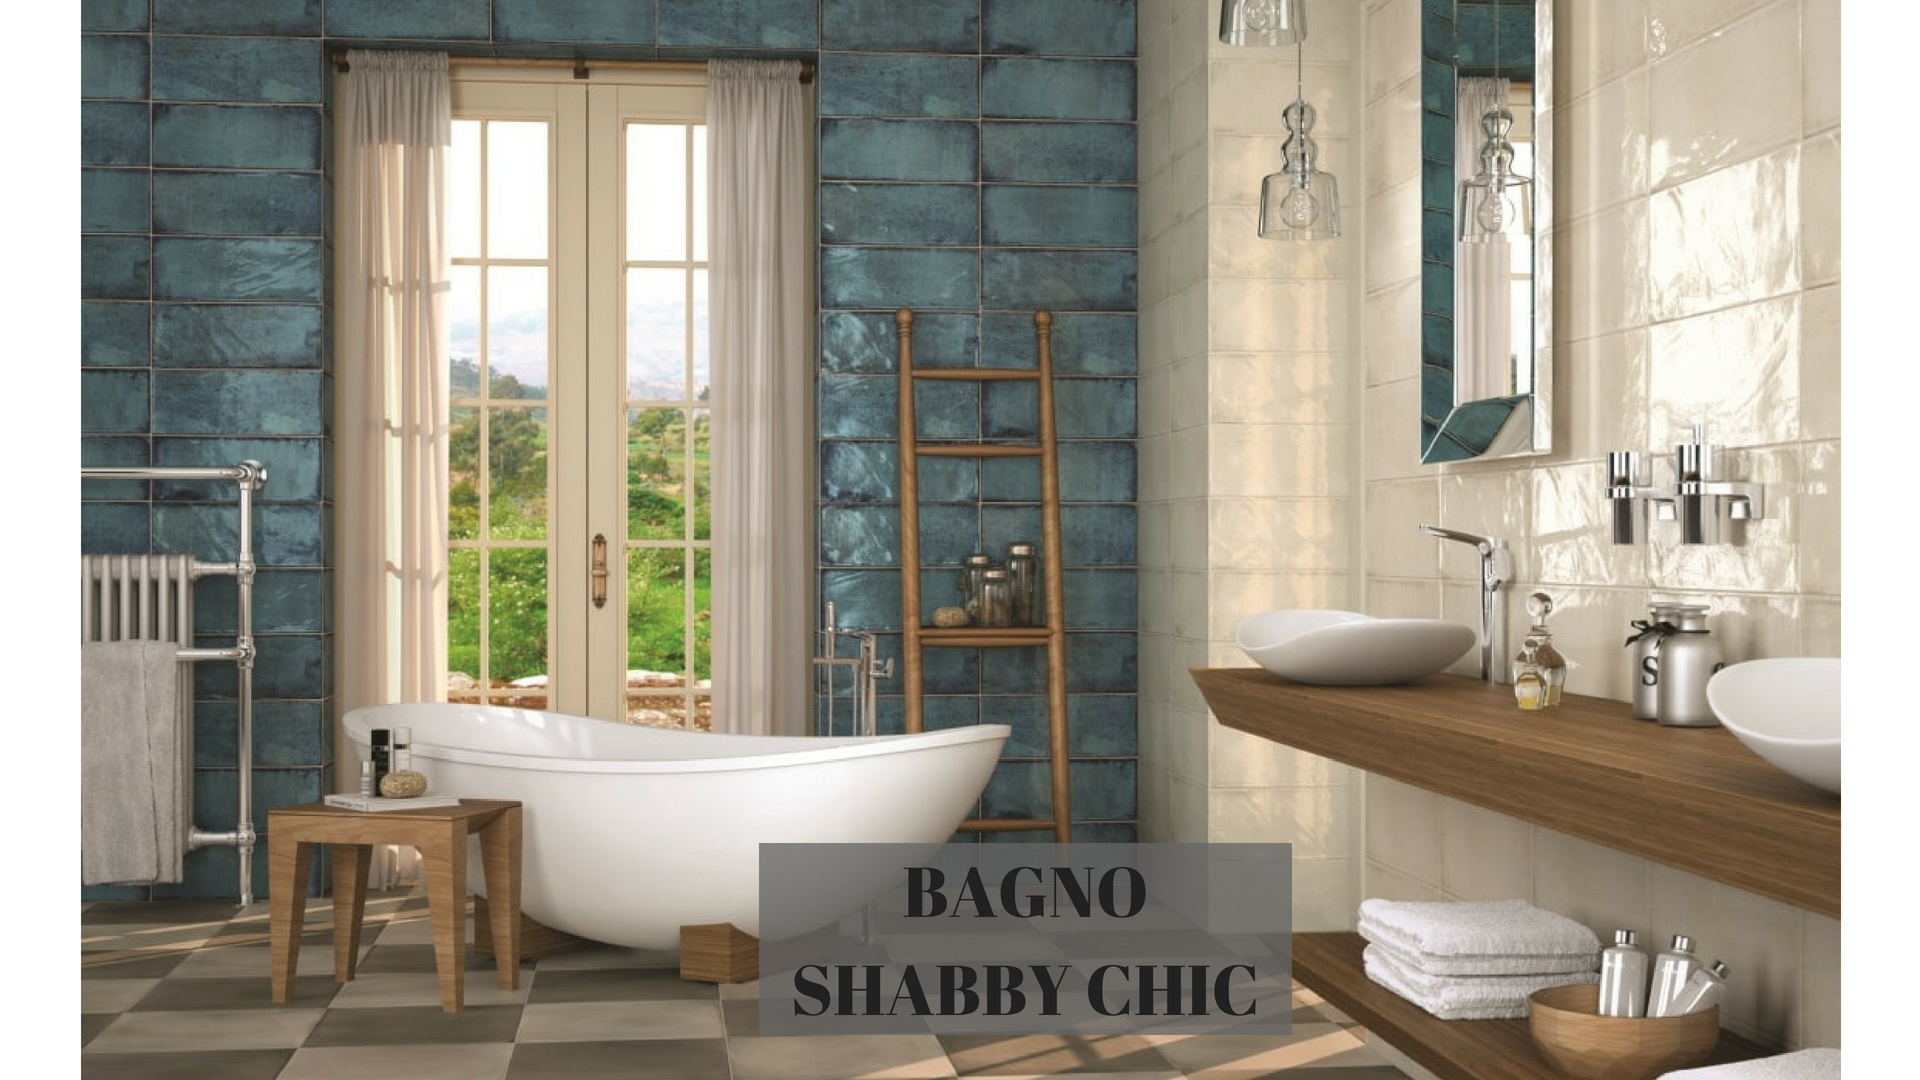 Bagno shabby chic elegantemente vintage sabia design center